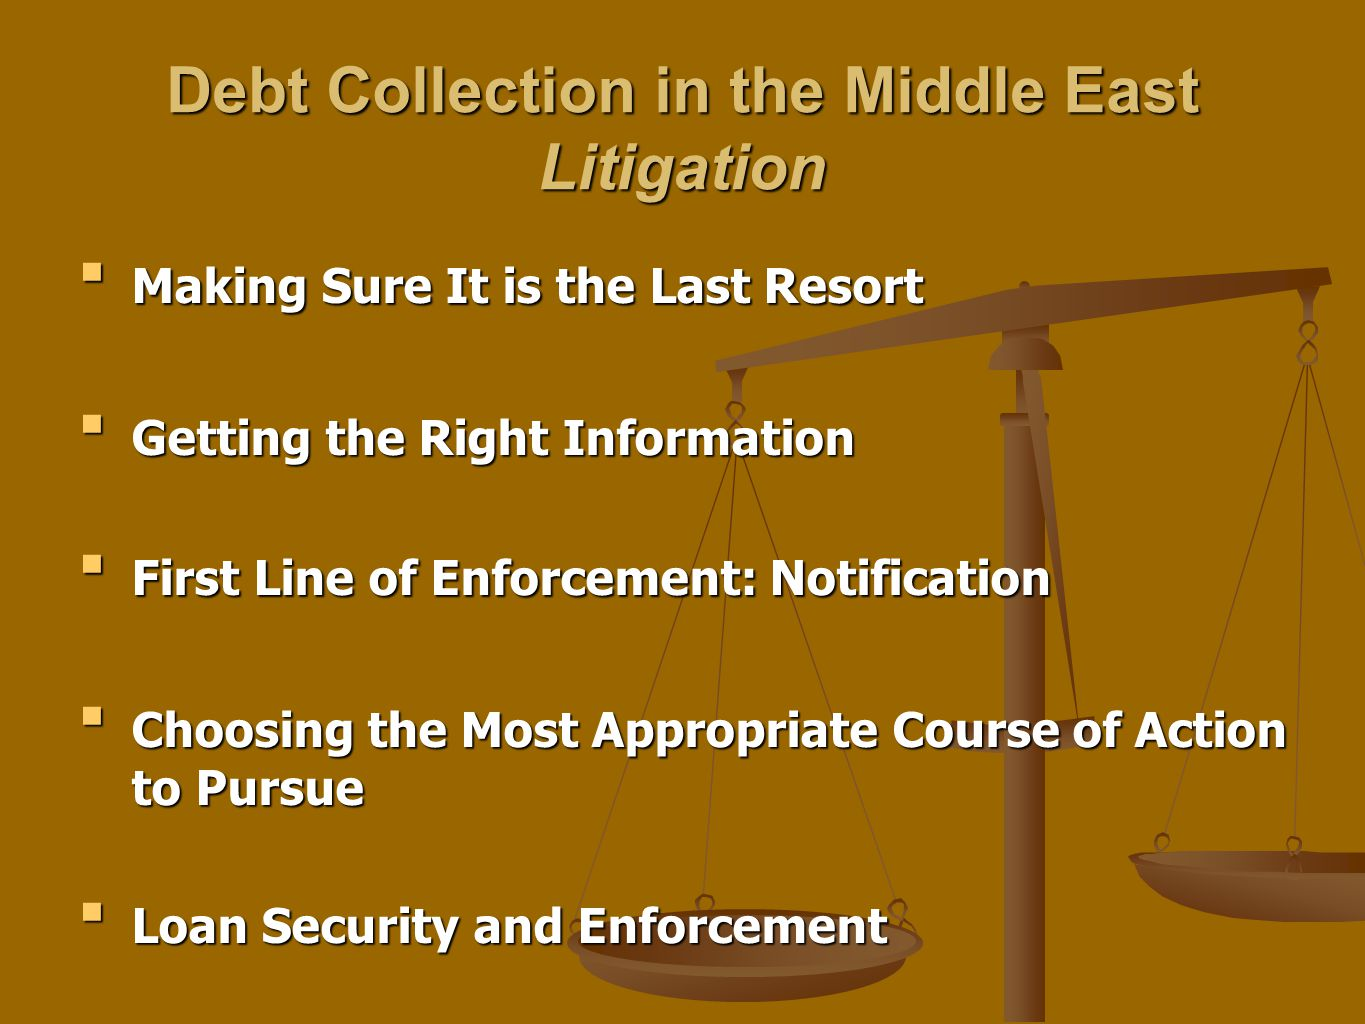 Debt Collection in the Middle East Litigation Making Sure It is the Last ResortMaking Sure It is the Last Resort Getting the Right InformationGetting